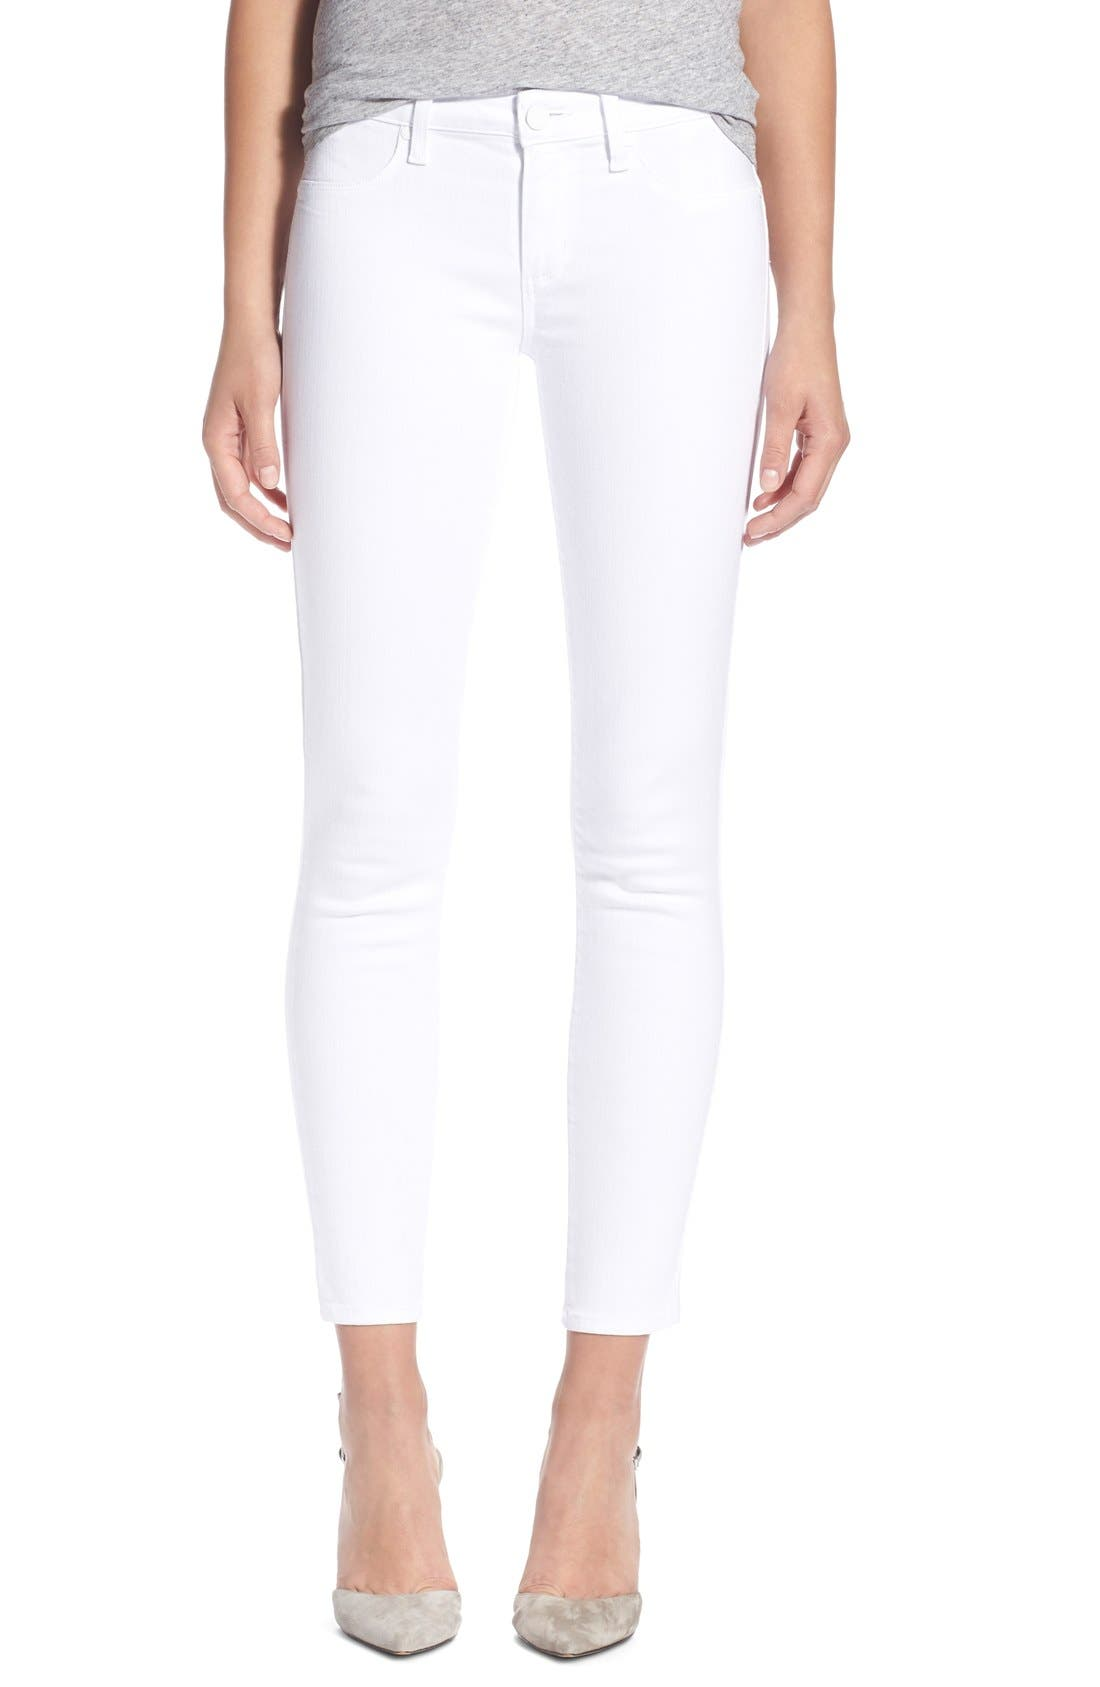 Main Image - PAIGE 'Verdugo' Ankle Skinny Jeans (Ultra White)